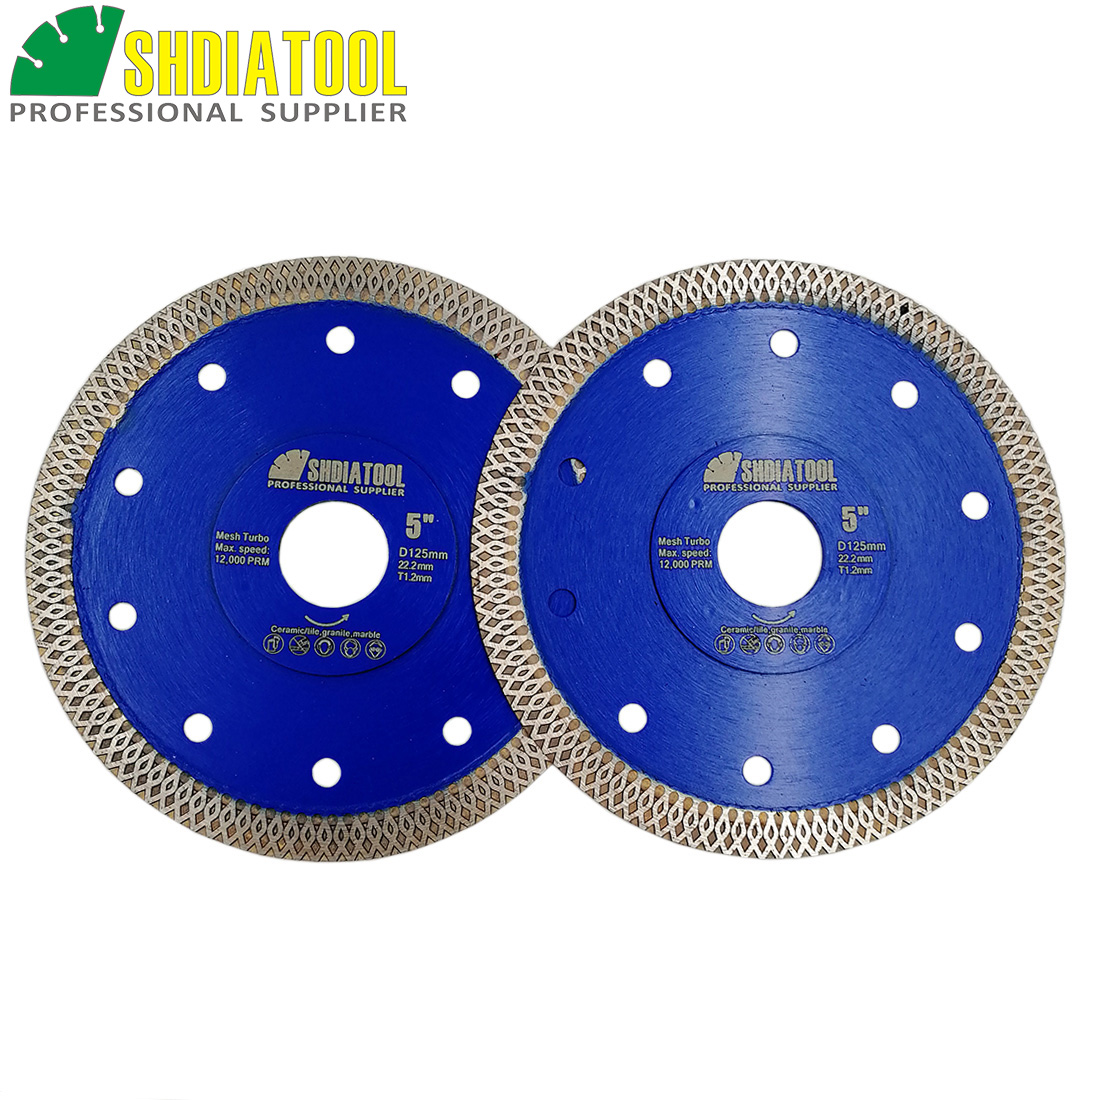 SHDIATOOL 2units Dia 5inch/125mm Hot Pressed Mesh Turbo Diamond Saw Blade Diamond Height 10MM Cutting Disc For Ceramic Tile